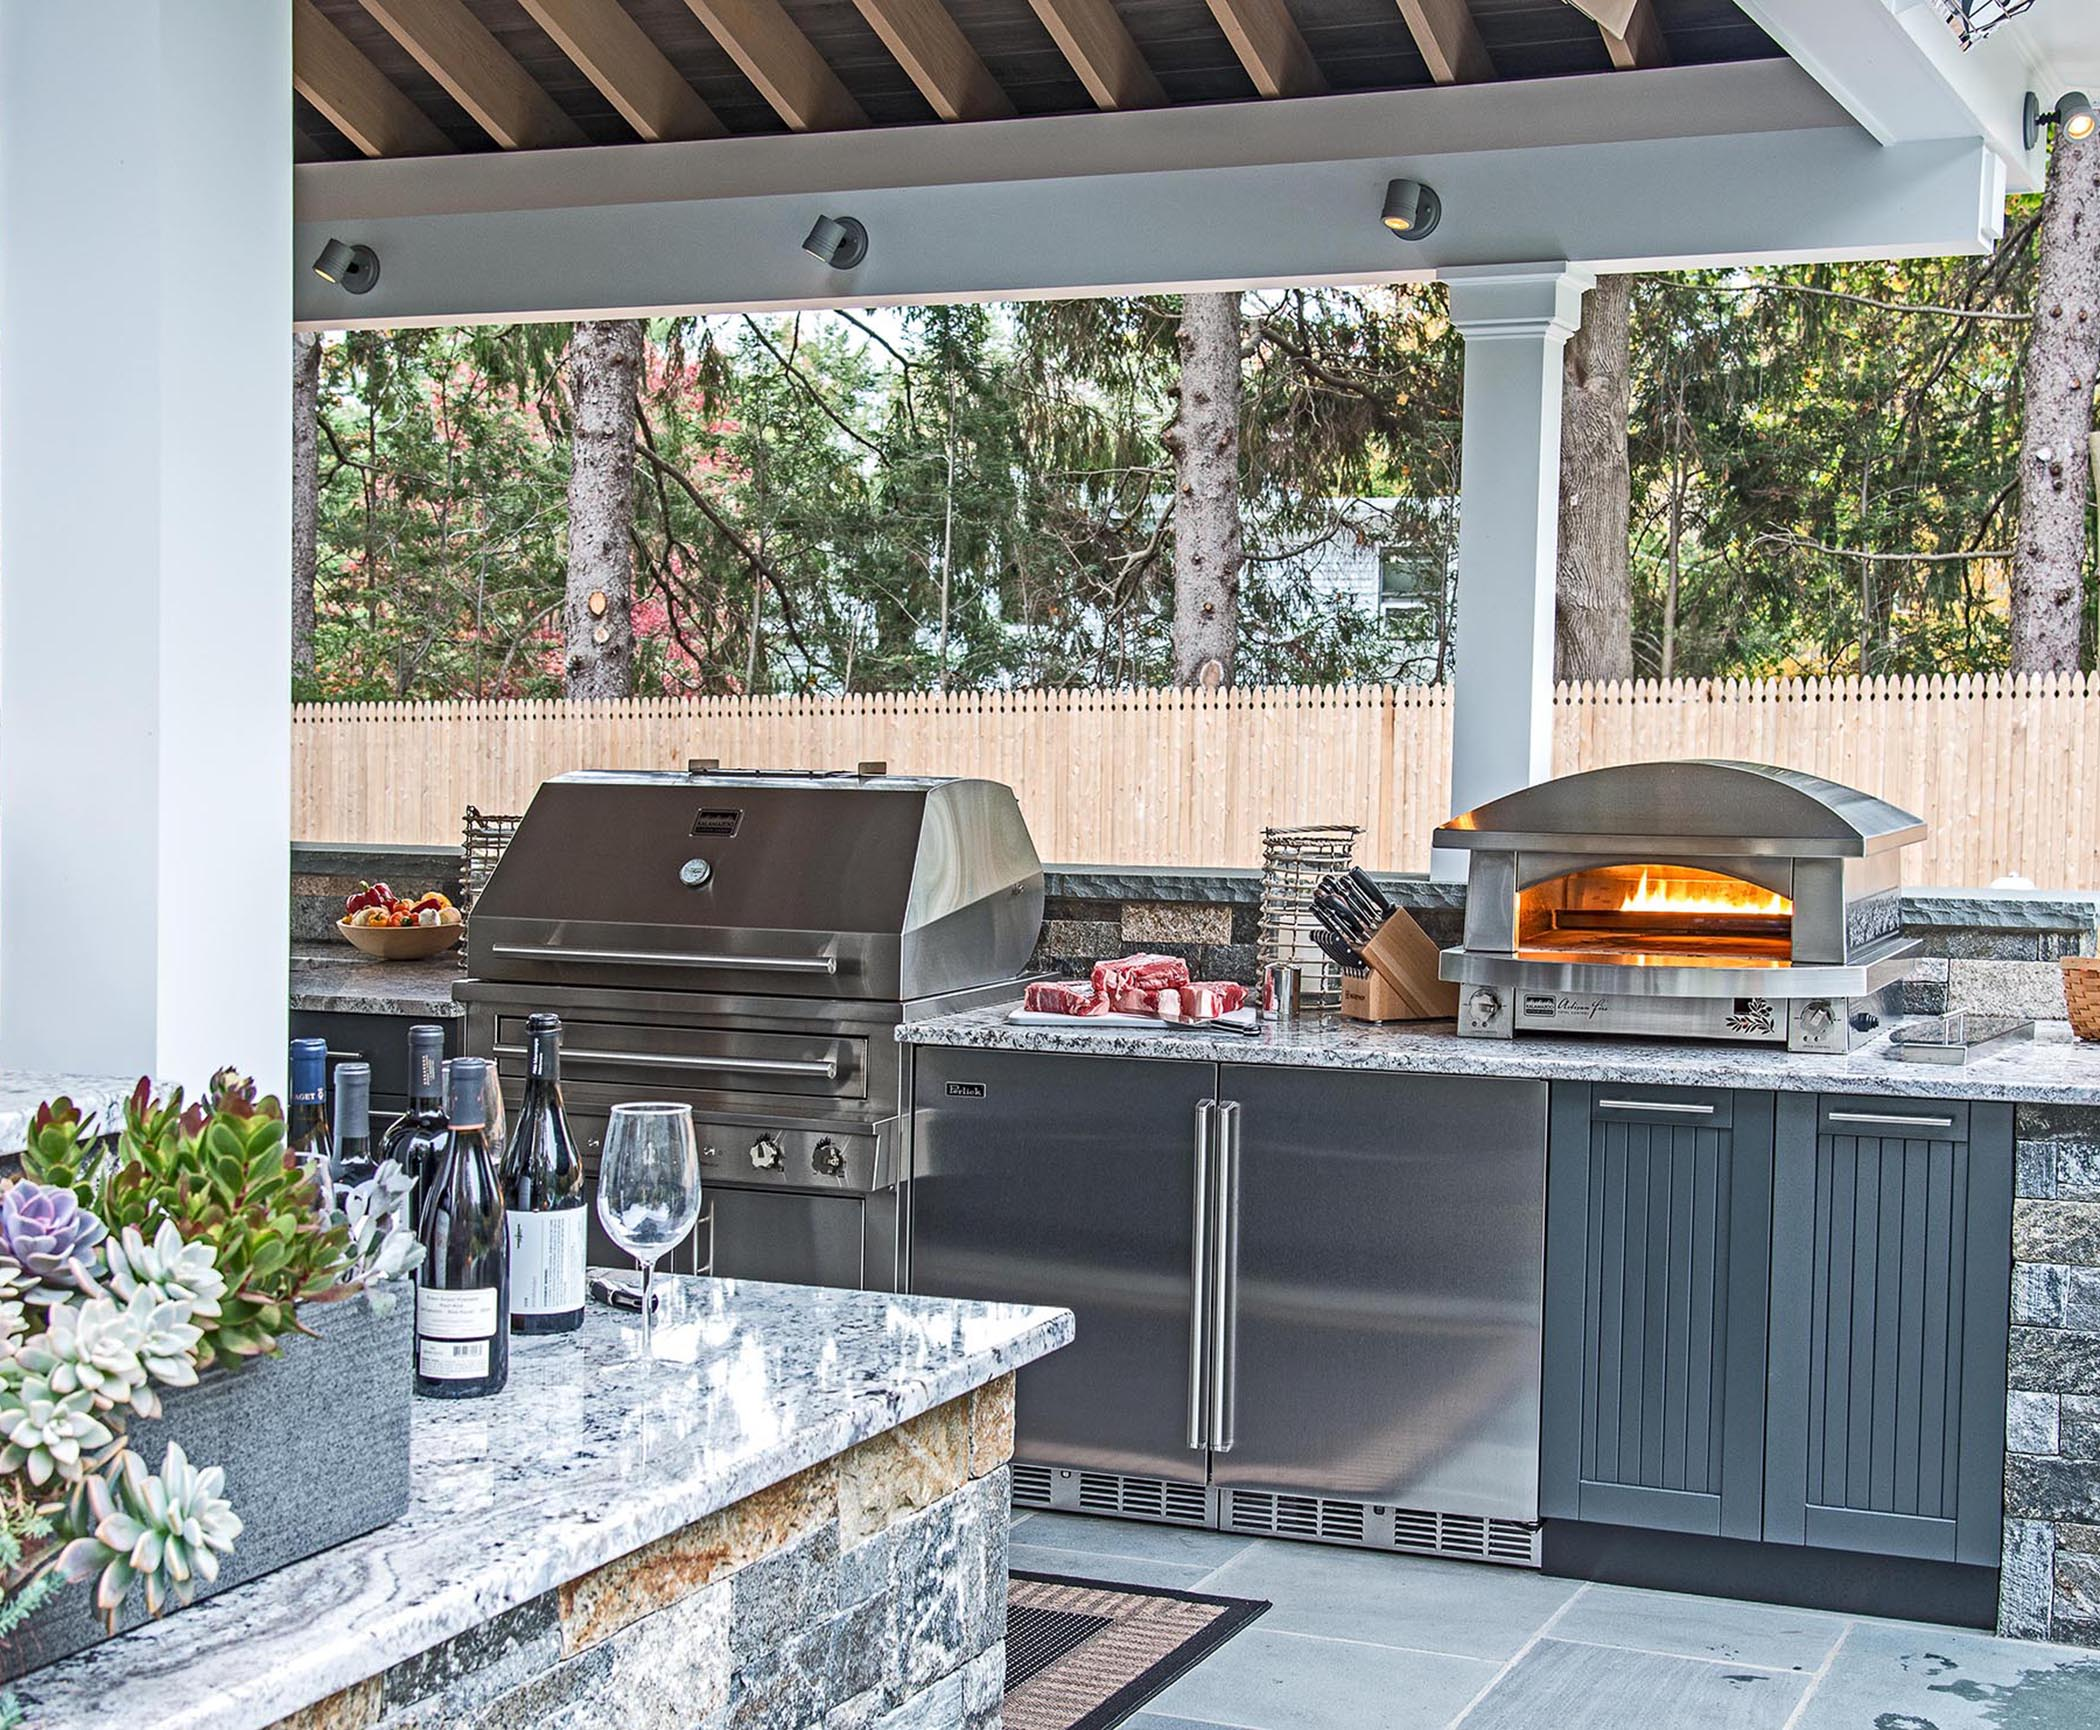 Outdoor Kitchen for Your Patio - Design Build Planners on Patio Kitchen id=46931